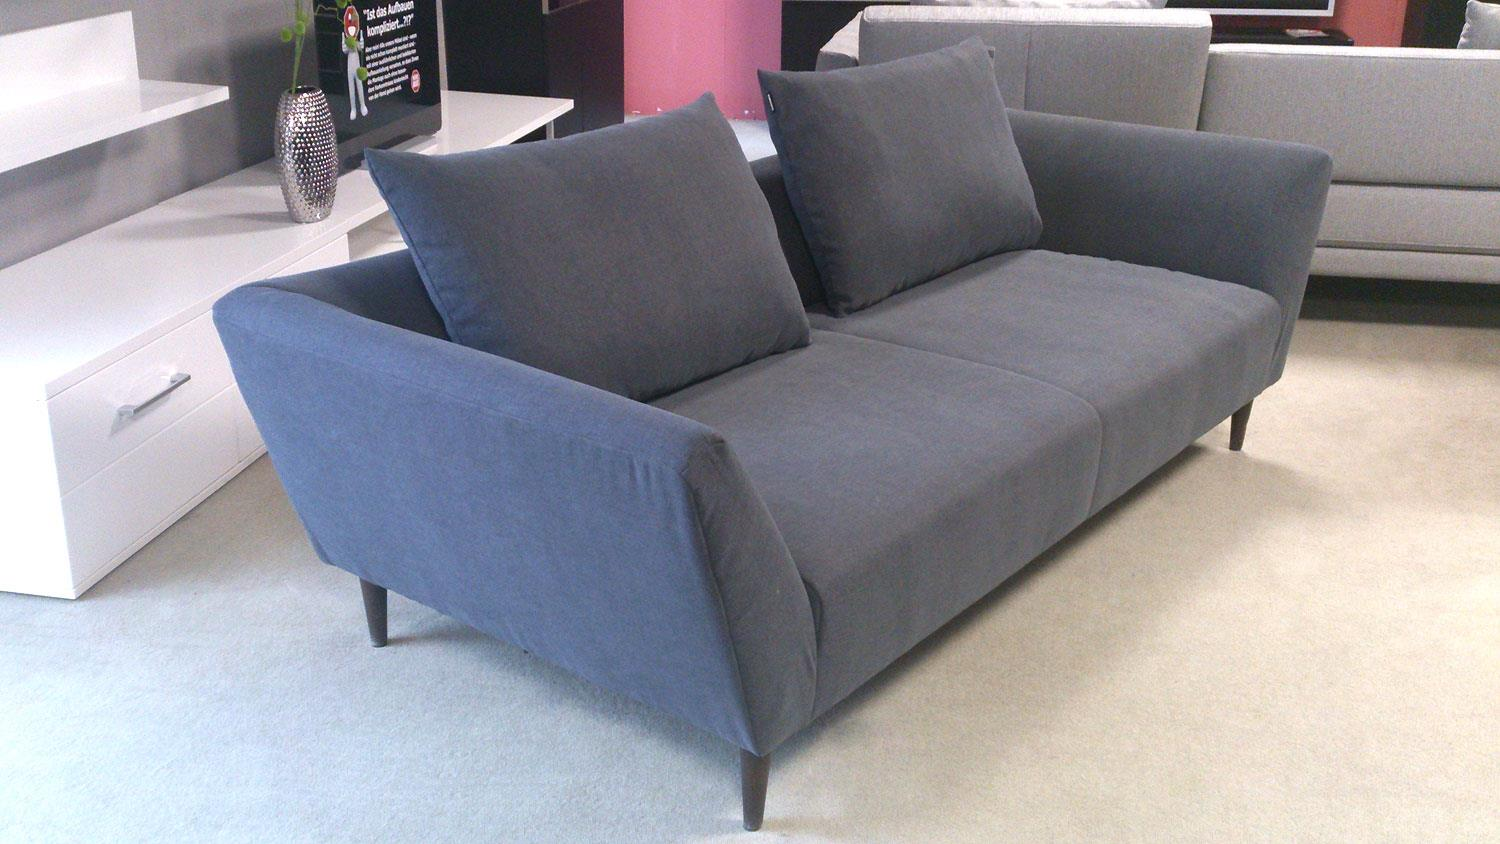 sofa freistil 176 rolf benz sofabank stoff grahpitgrau 2 kissen. Black Bedroom Furniture Sets. Home Design Ideas